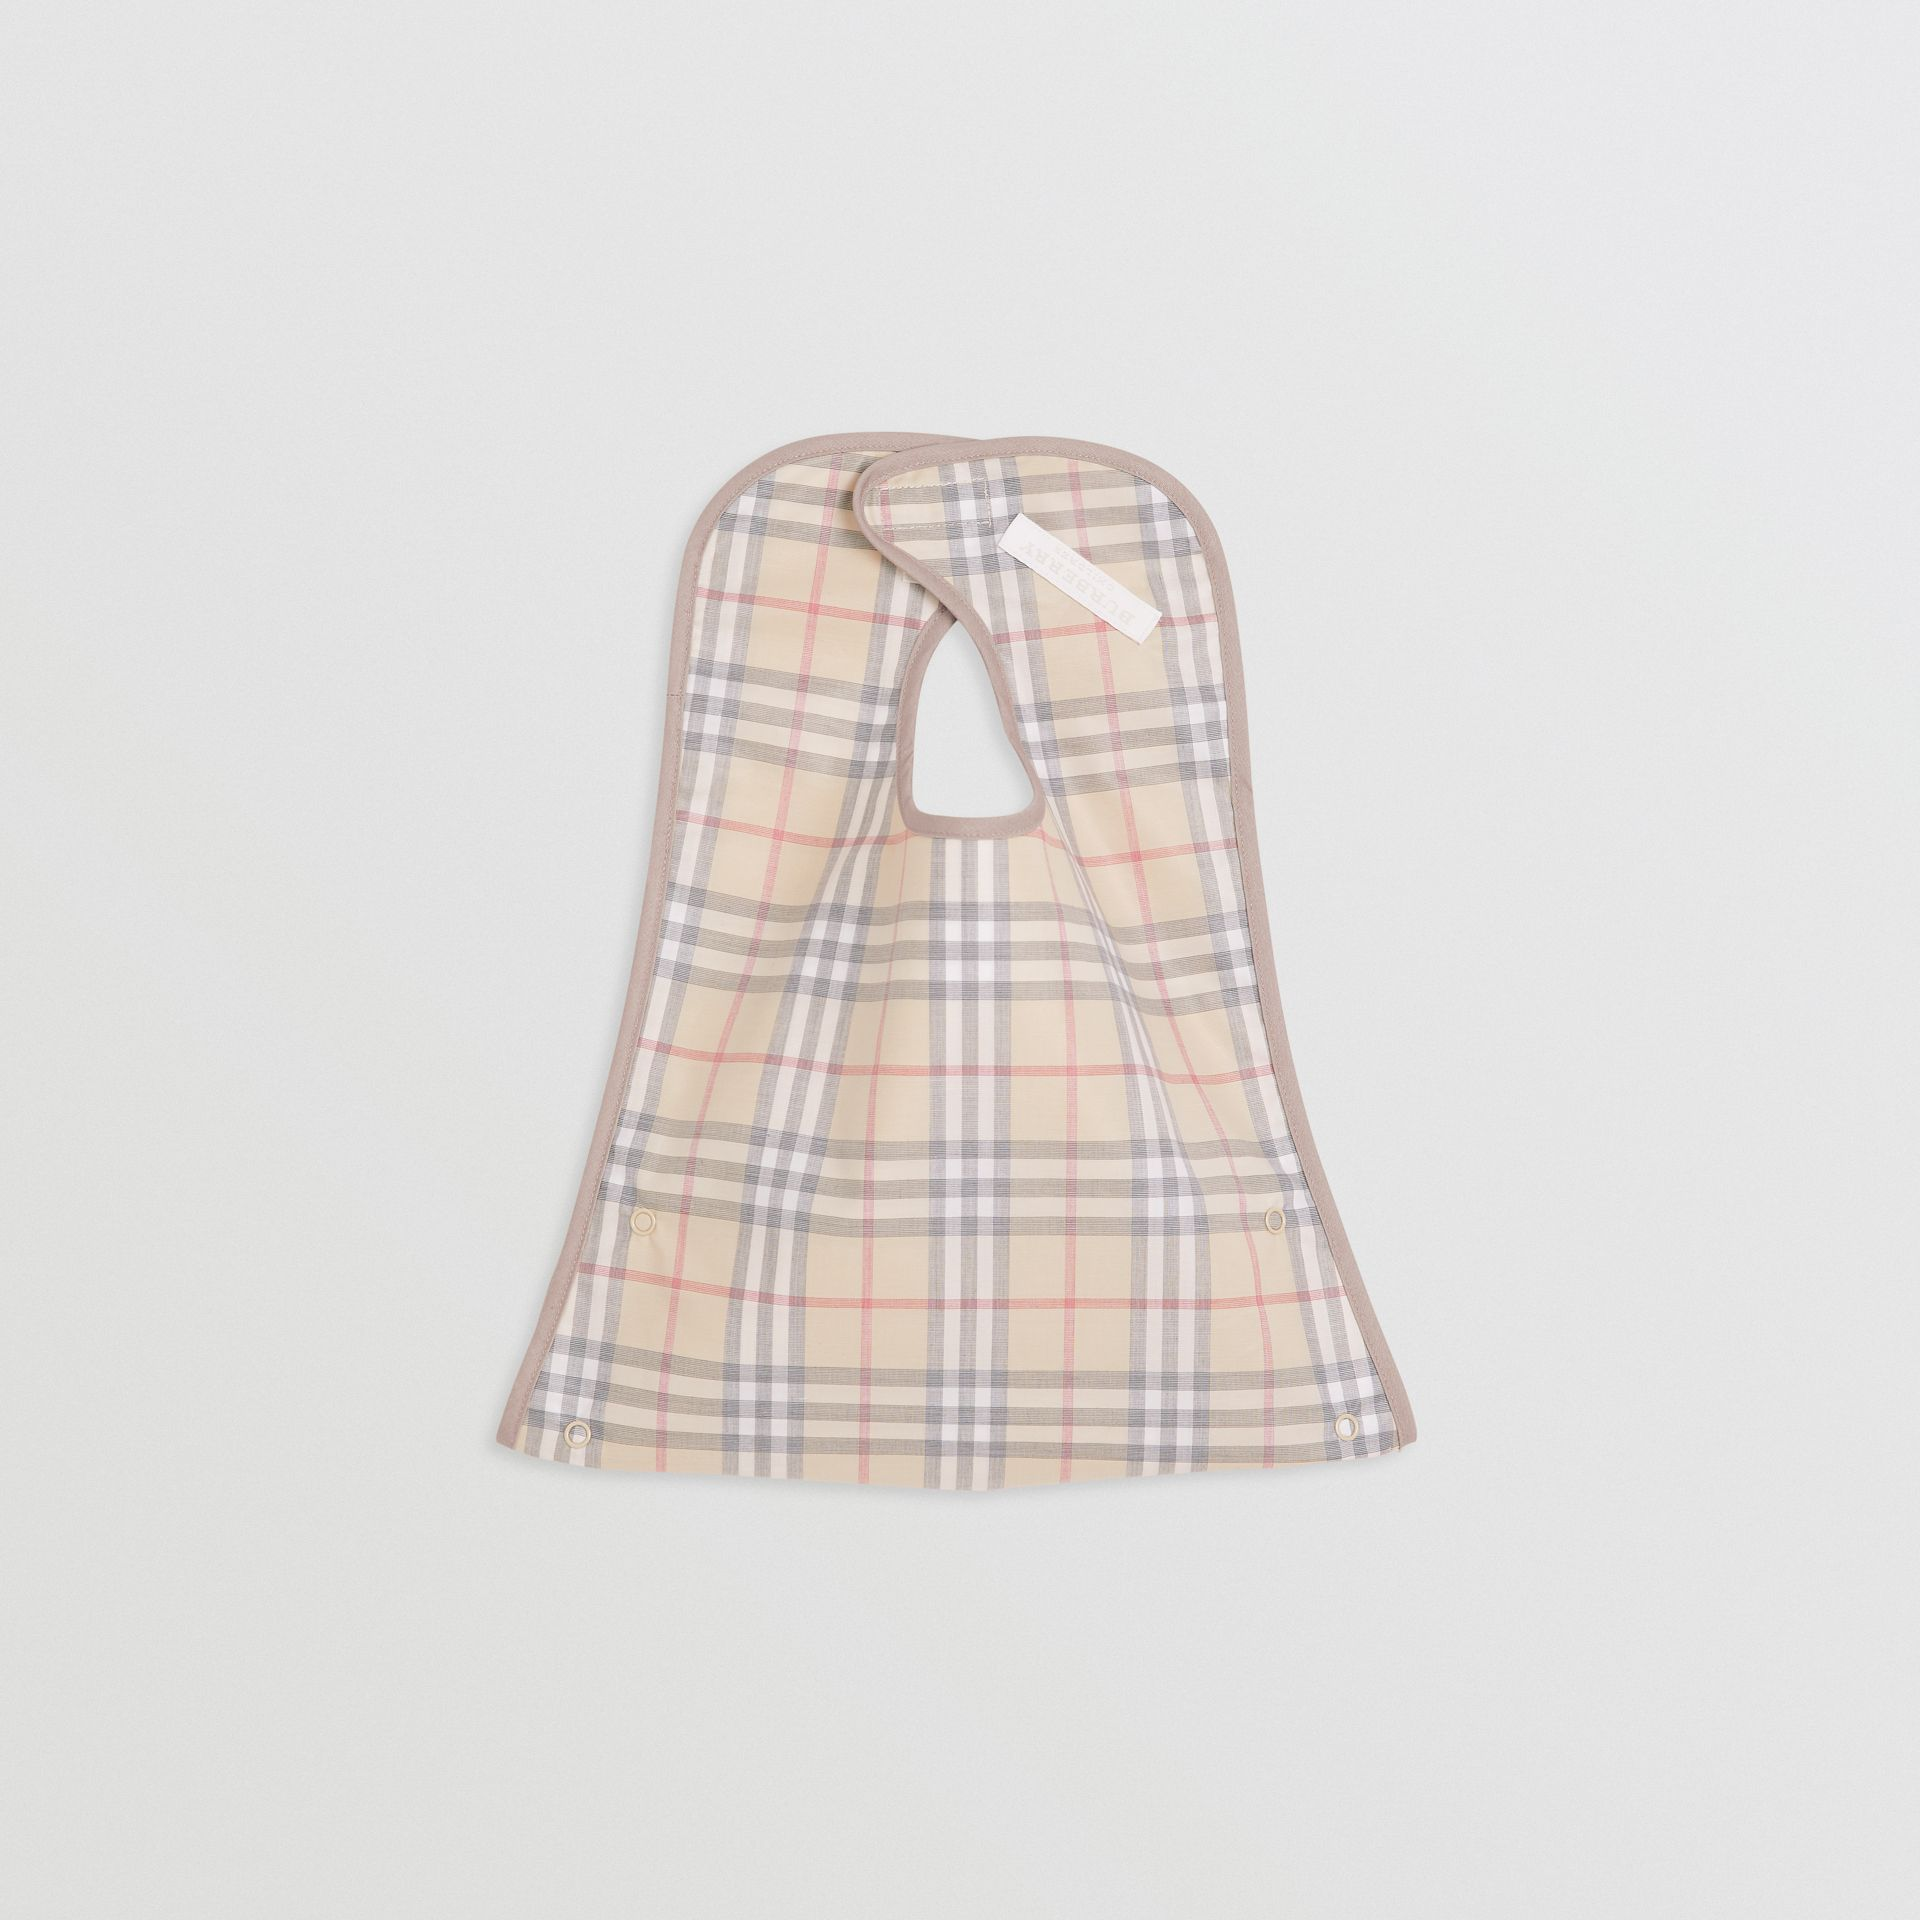 Coated Check Cotton Baby Bib in Pale Stone - Children | Burberry - gallery image 2